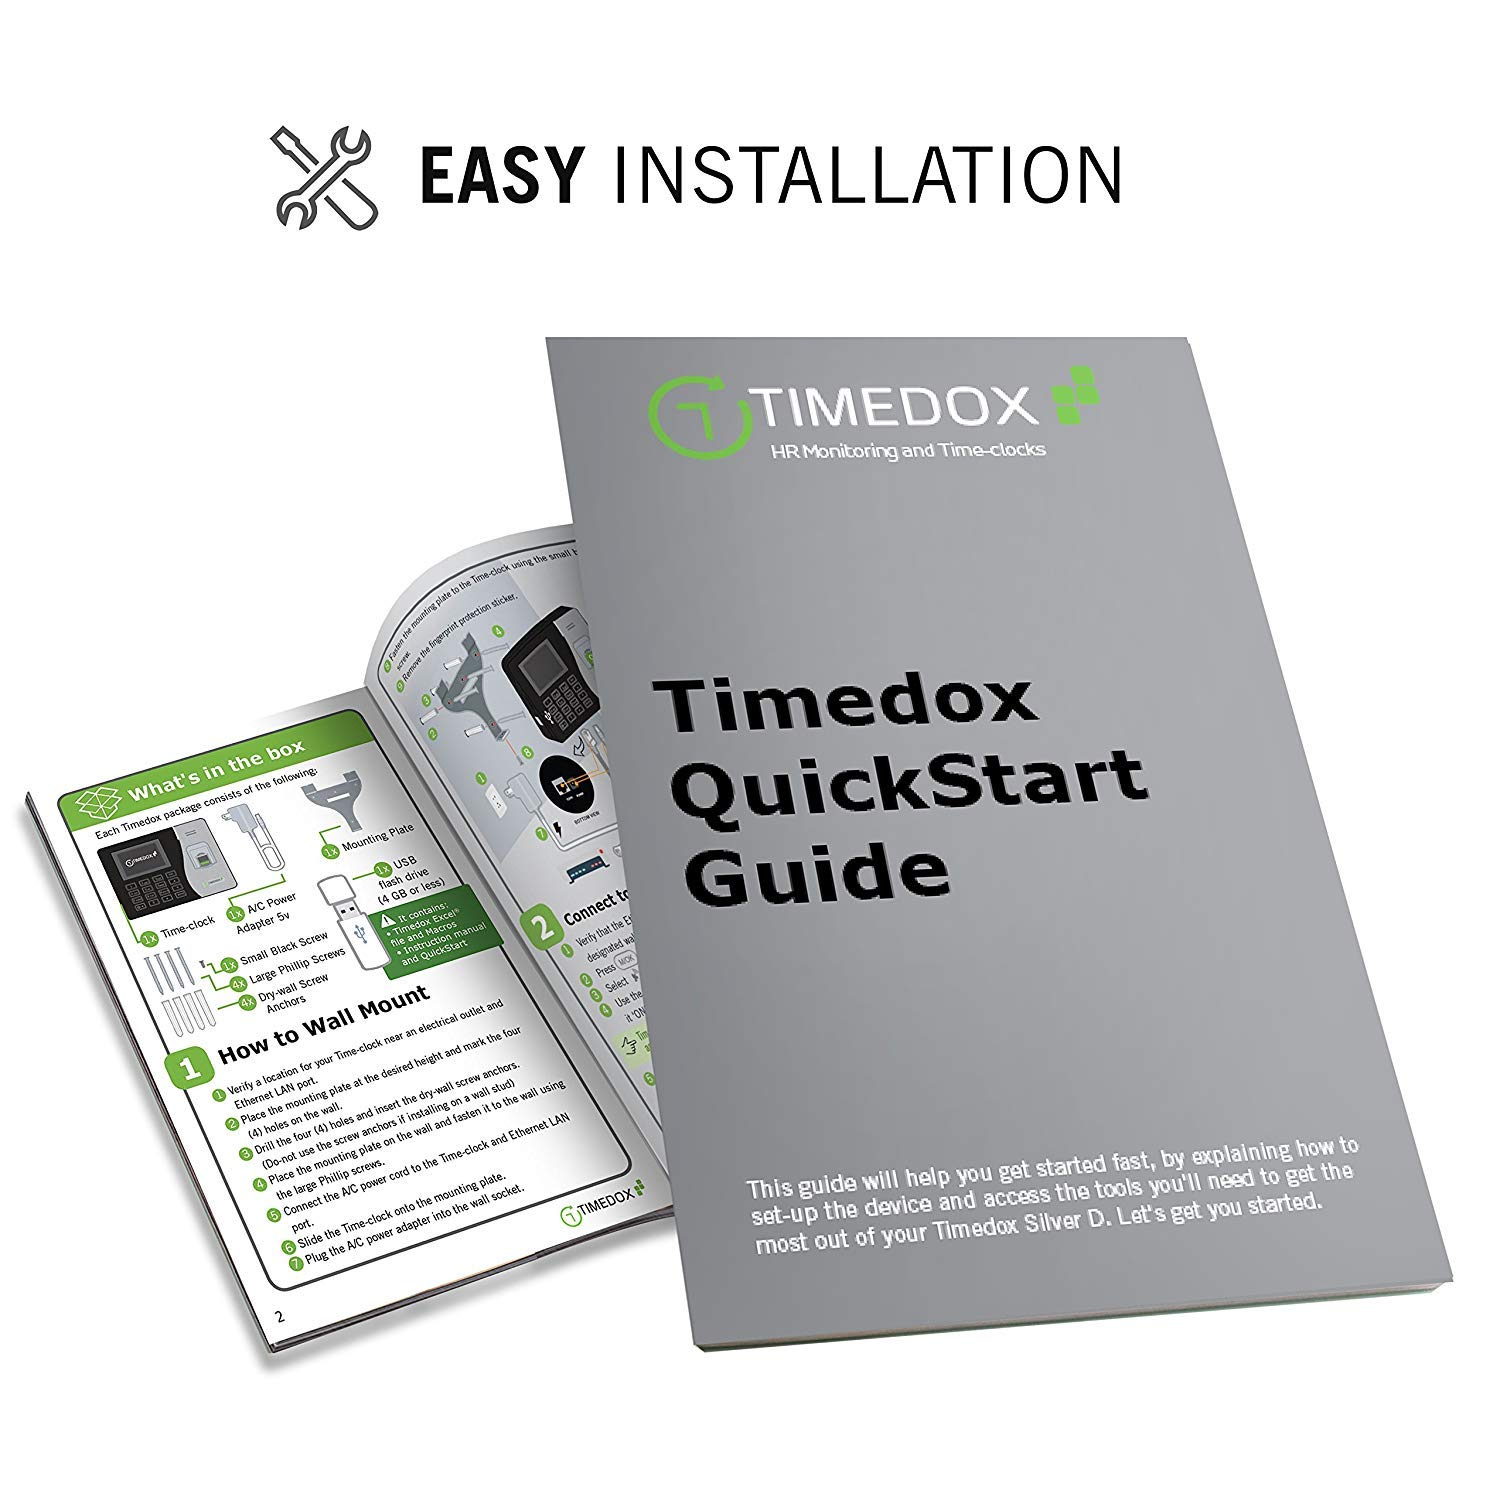 Timedox Silver D Biometric Fingerprint Time Clock for Employees | $0 Monthly Fee | One Time Payment for The Software Required | Include USB Flash Drive & Dynamic Reports Creator | USA Support by Timedox (Image #6)